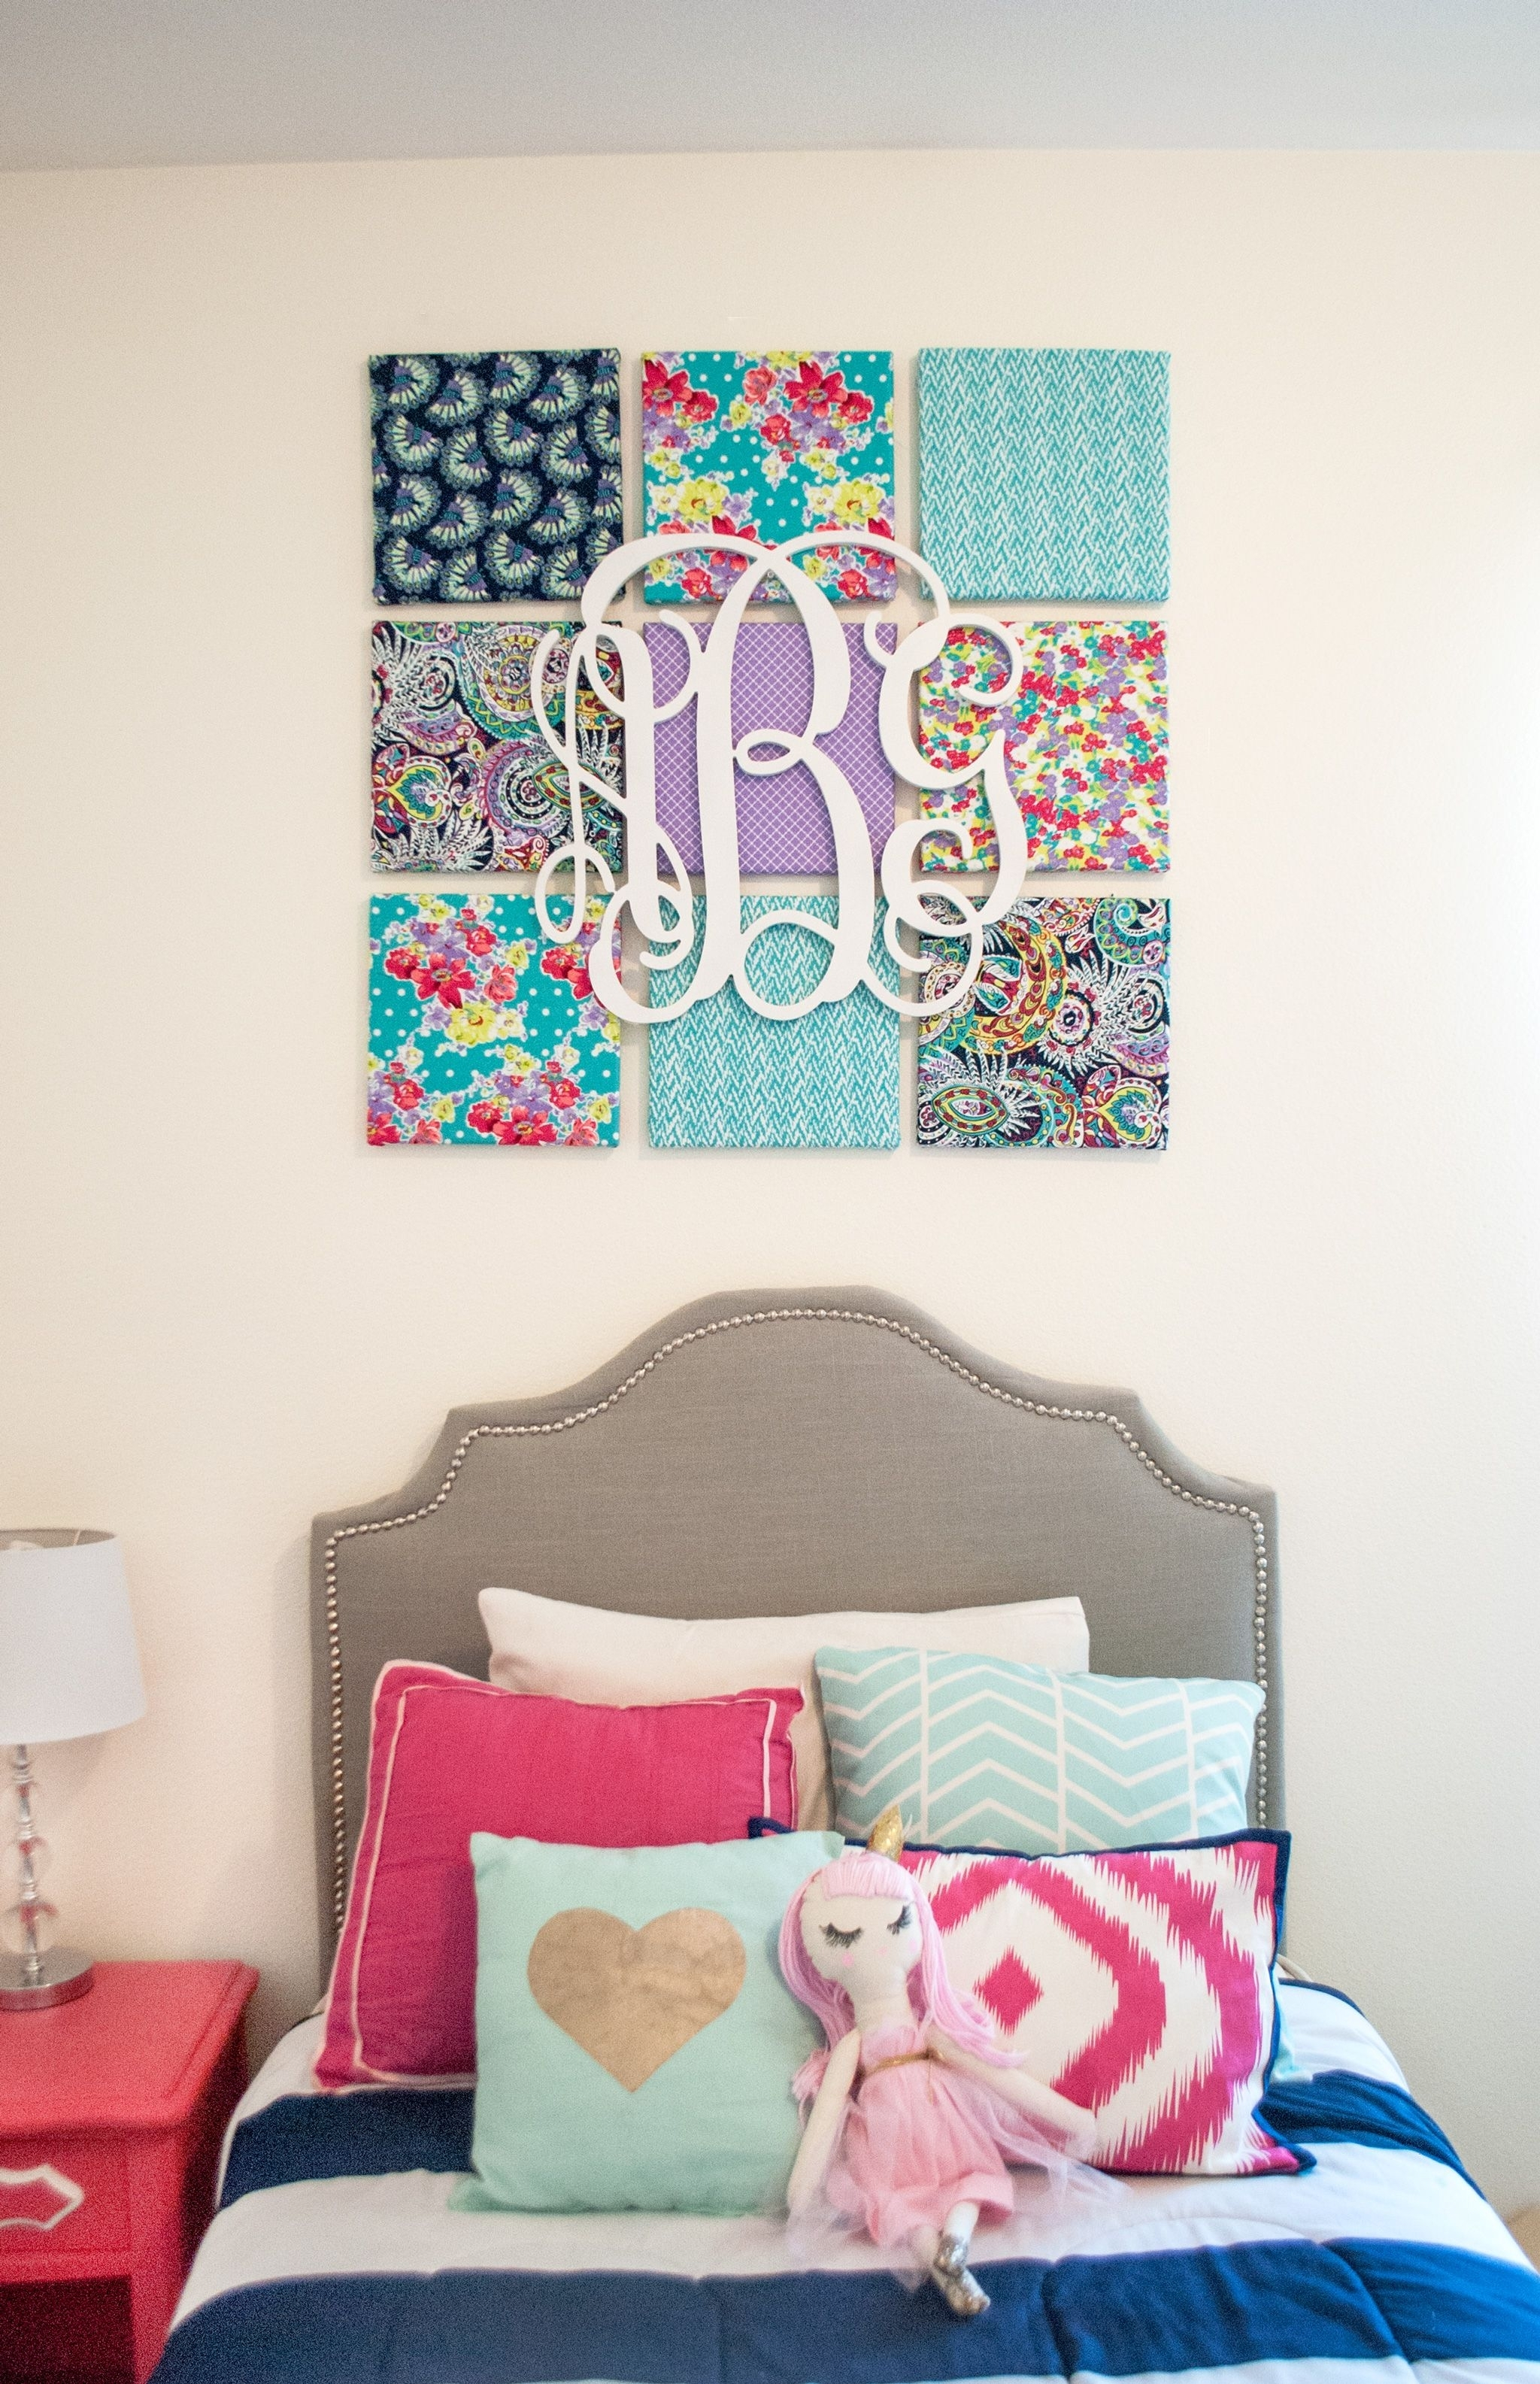 Diy Fabric Wall Art | Monogram Wall, Kids Rooms And Monograms With Regard To Latest Diy Fabric Wall Art (View 5 of 15)